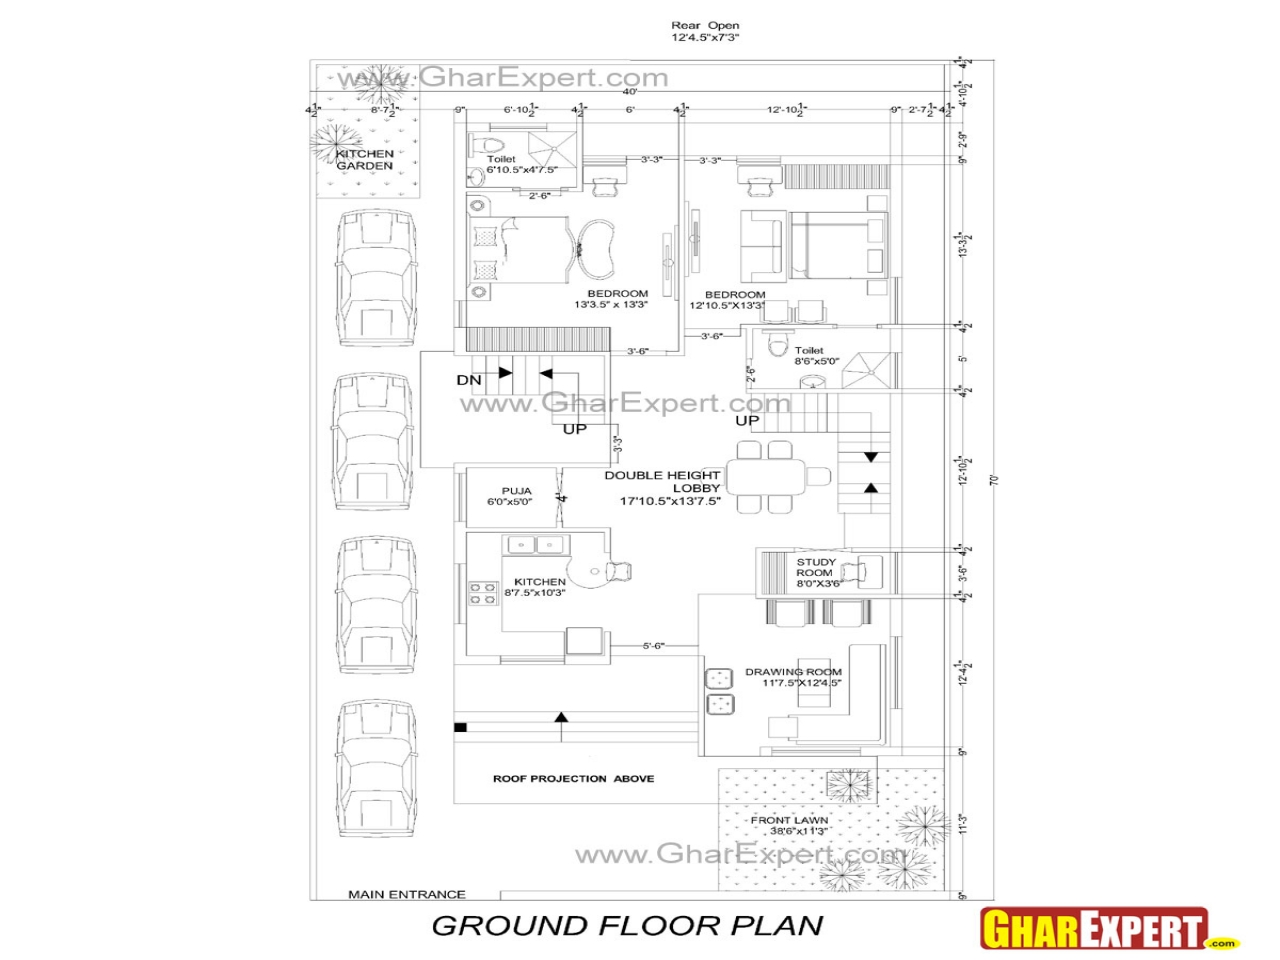 34 wide house plans html with 268e502c05f60520 House Plans 50 X 35 30 X 50 House Plans on D907082c73c13449 Country Log Cabin Homes Floor Plans Inside Log Homes likewise Aflf 06154 as well 856c4bce59b51b49 Narrow Lot House Plans With Garage Very Narrow Lot House Plans together with Theresa May Wel es EU Exemption US Steel Tariffs additionally 21655.